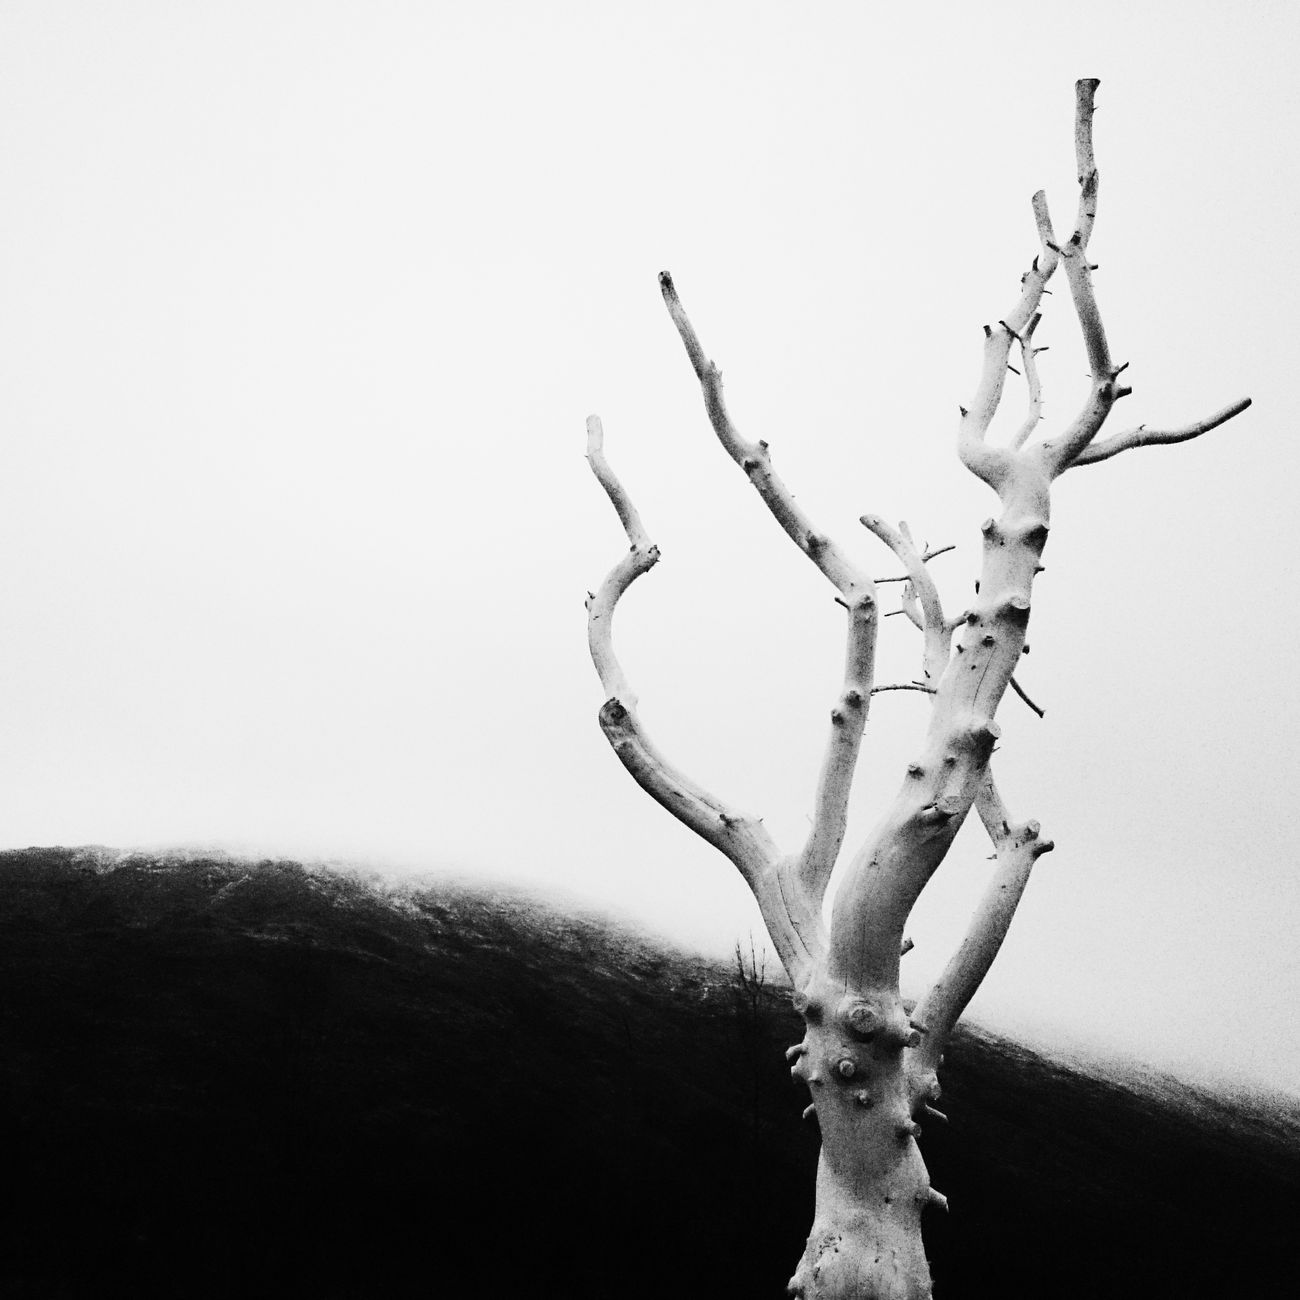 Mobilephoto Mobilephotography Blackandwhite Black & White Monochrome Nature Traveling Minimal AMPt - Still Life (Nature Morte) Iceland